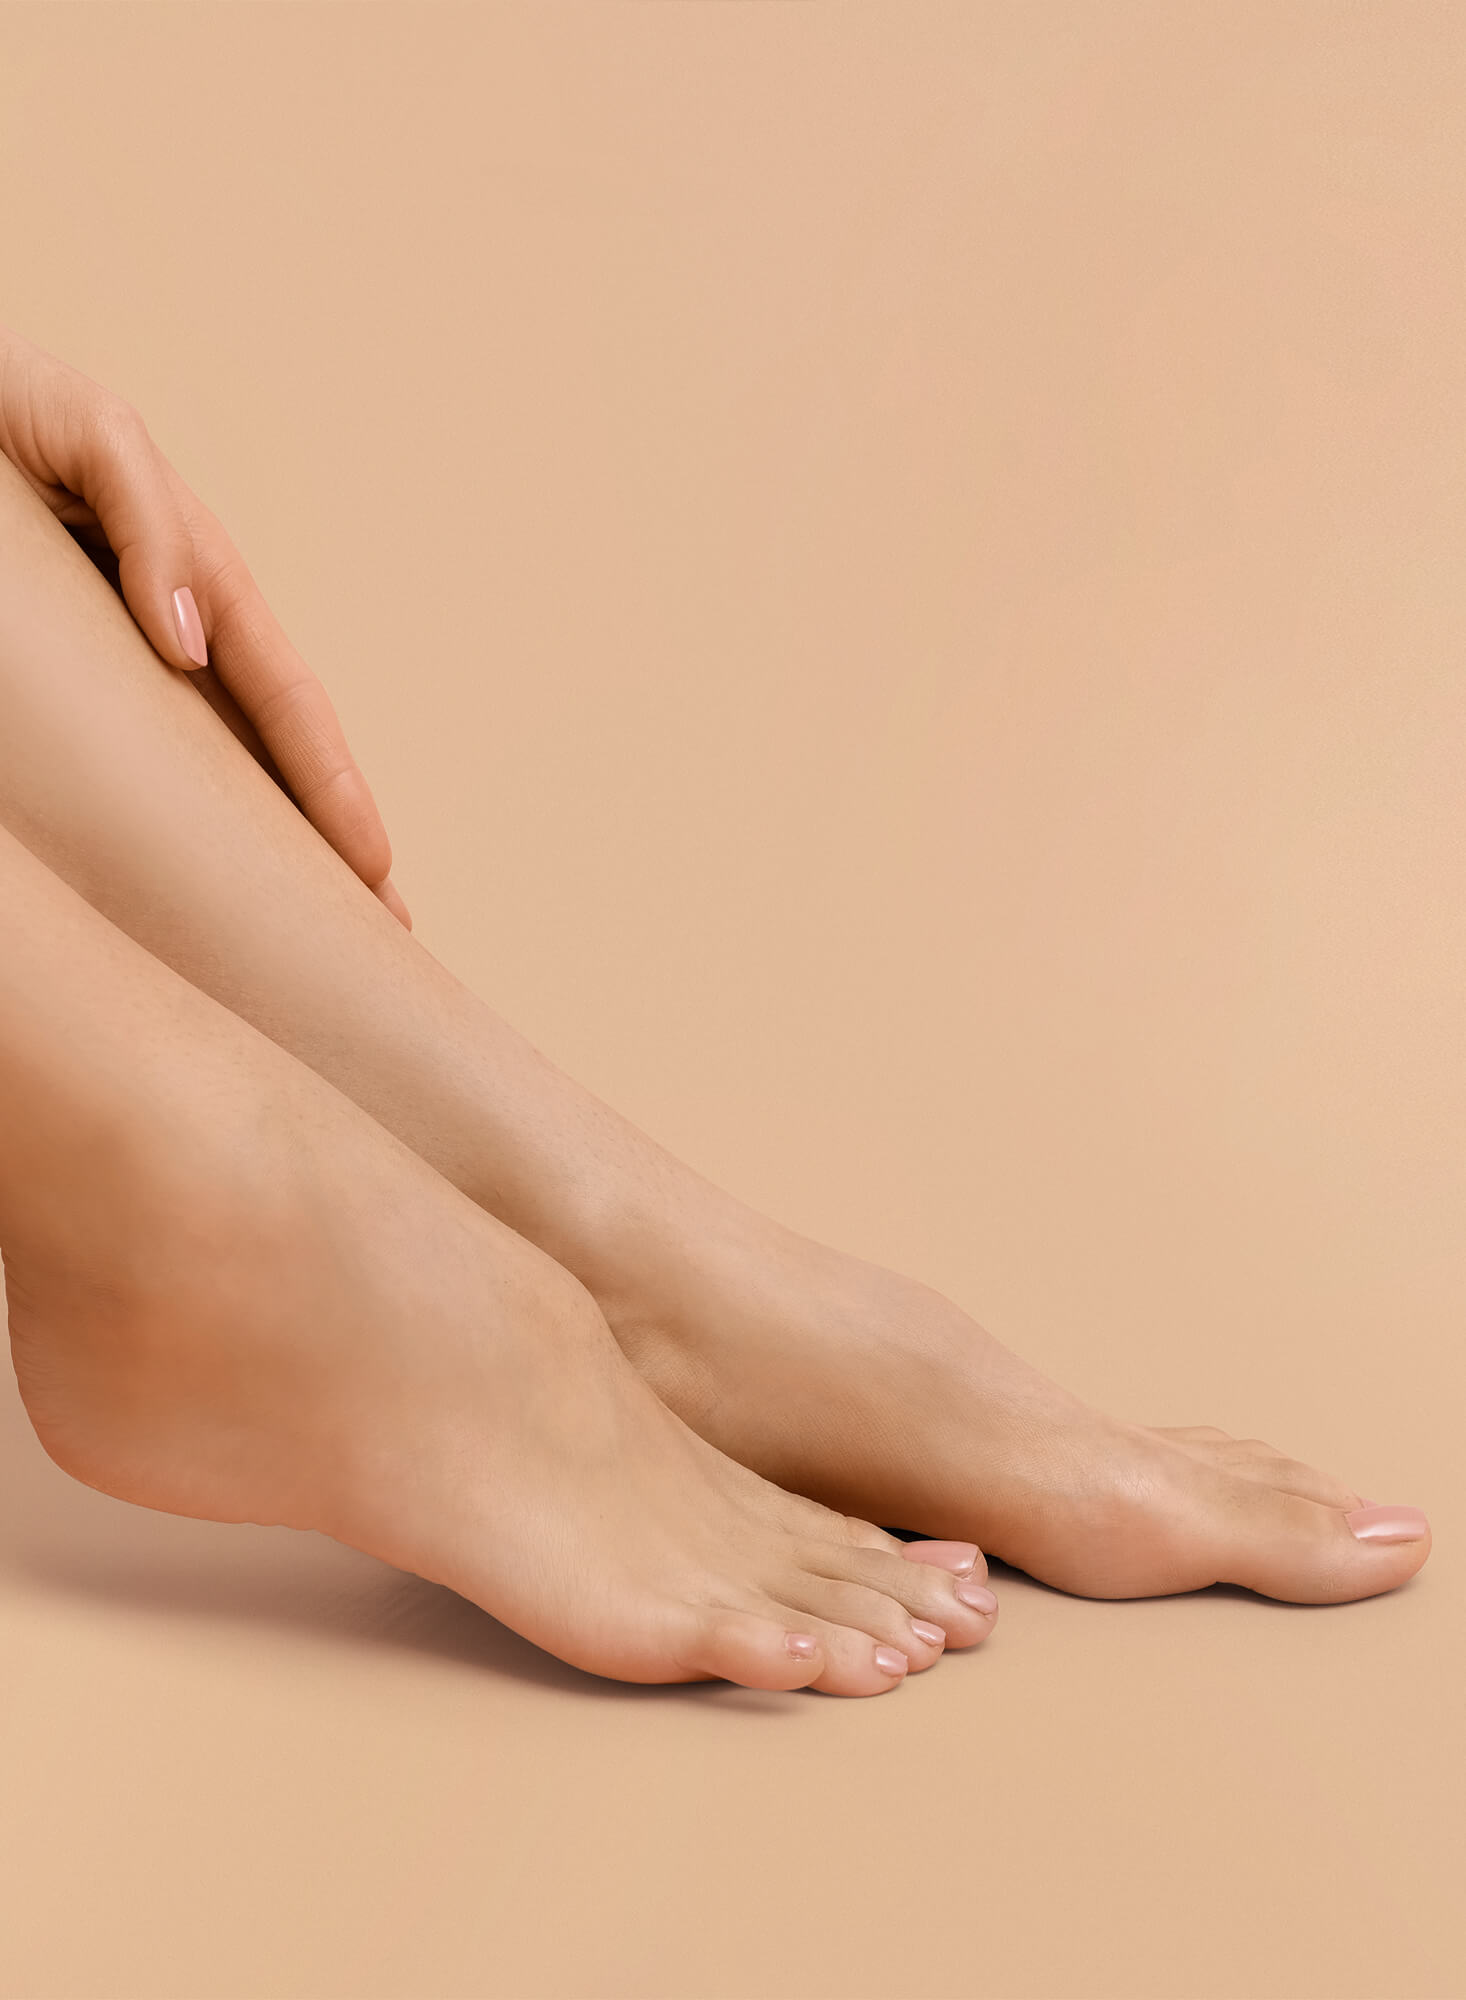 Womans freshly pedicured feet posing one beside the other pointing right with a beige solid background